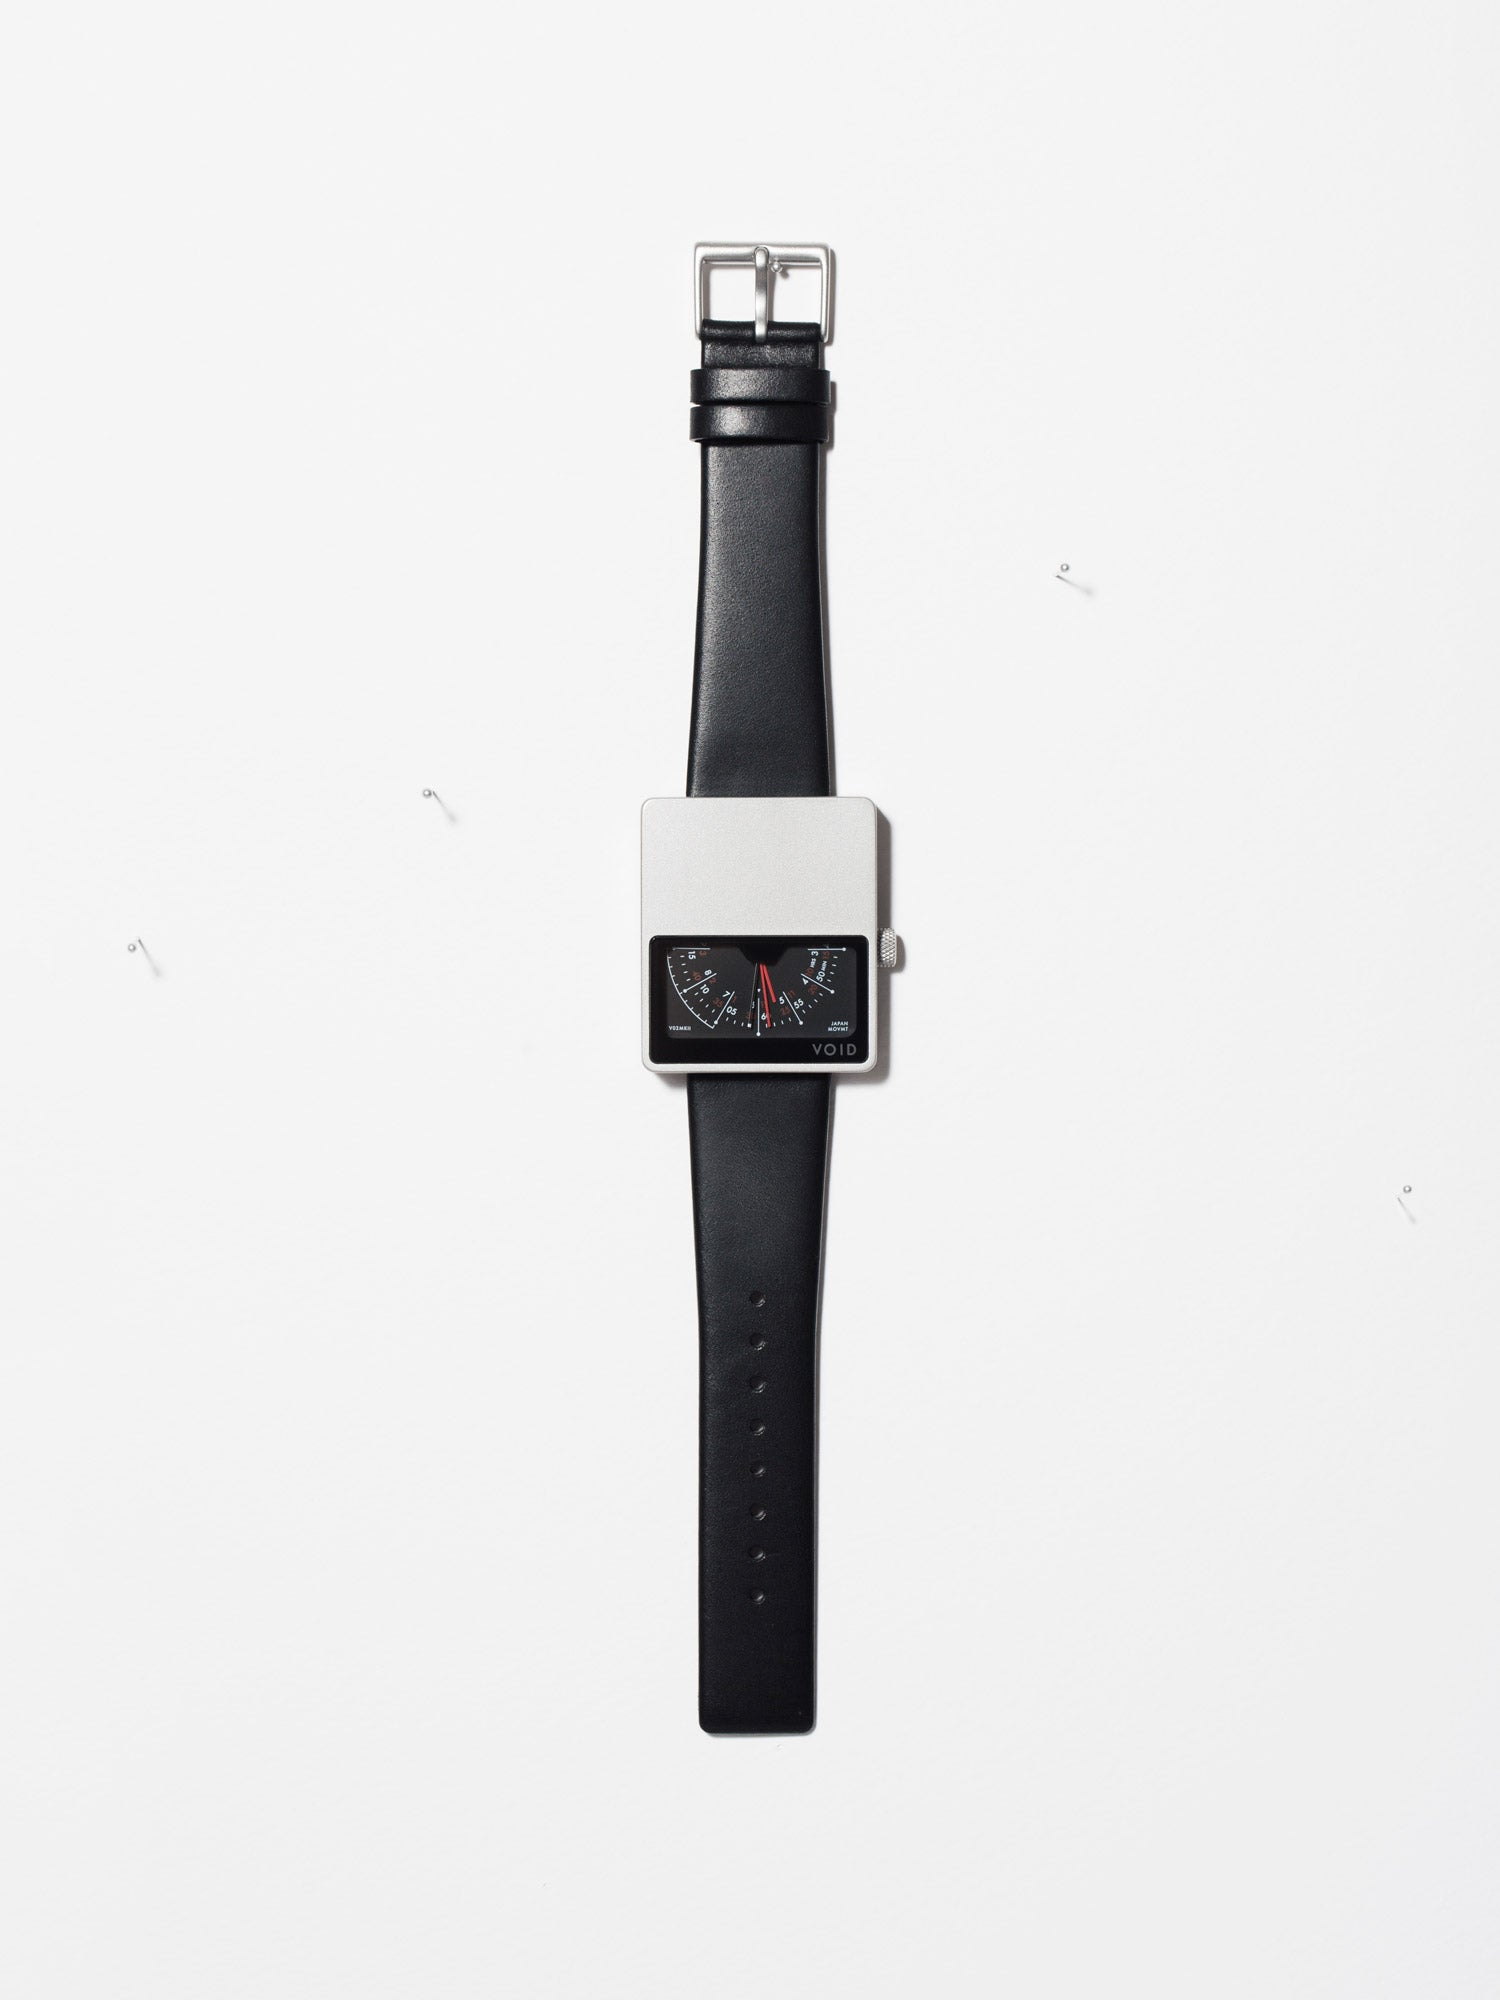 The iconic square horizon V02MKII watch by Swedish Designer David Ericsson. V02MKII-SI/BL.